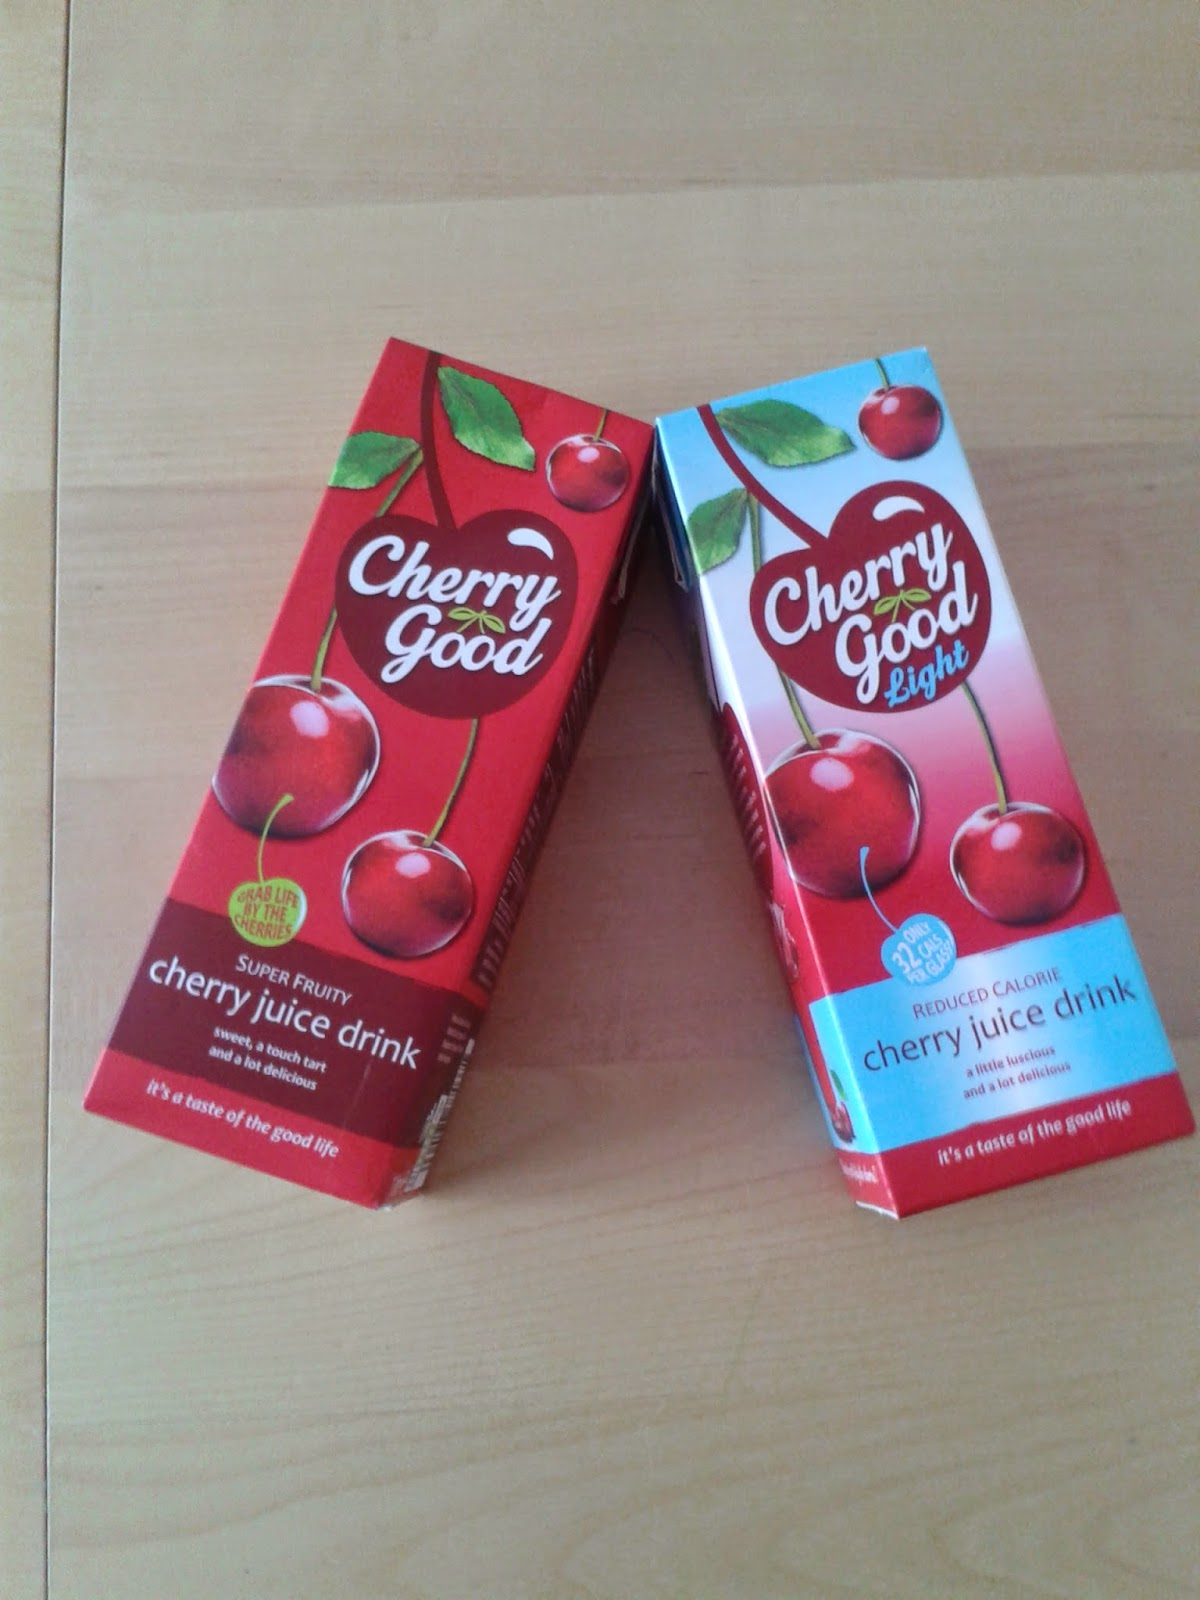 Montmorency Cherry Juice Drink Cherry Good, Original and Light